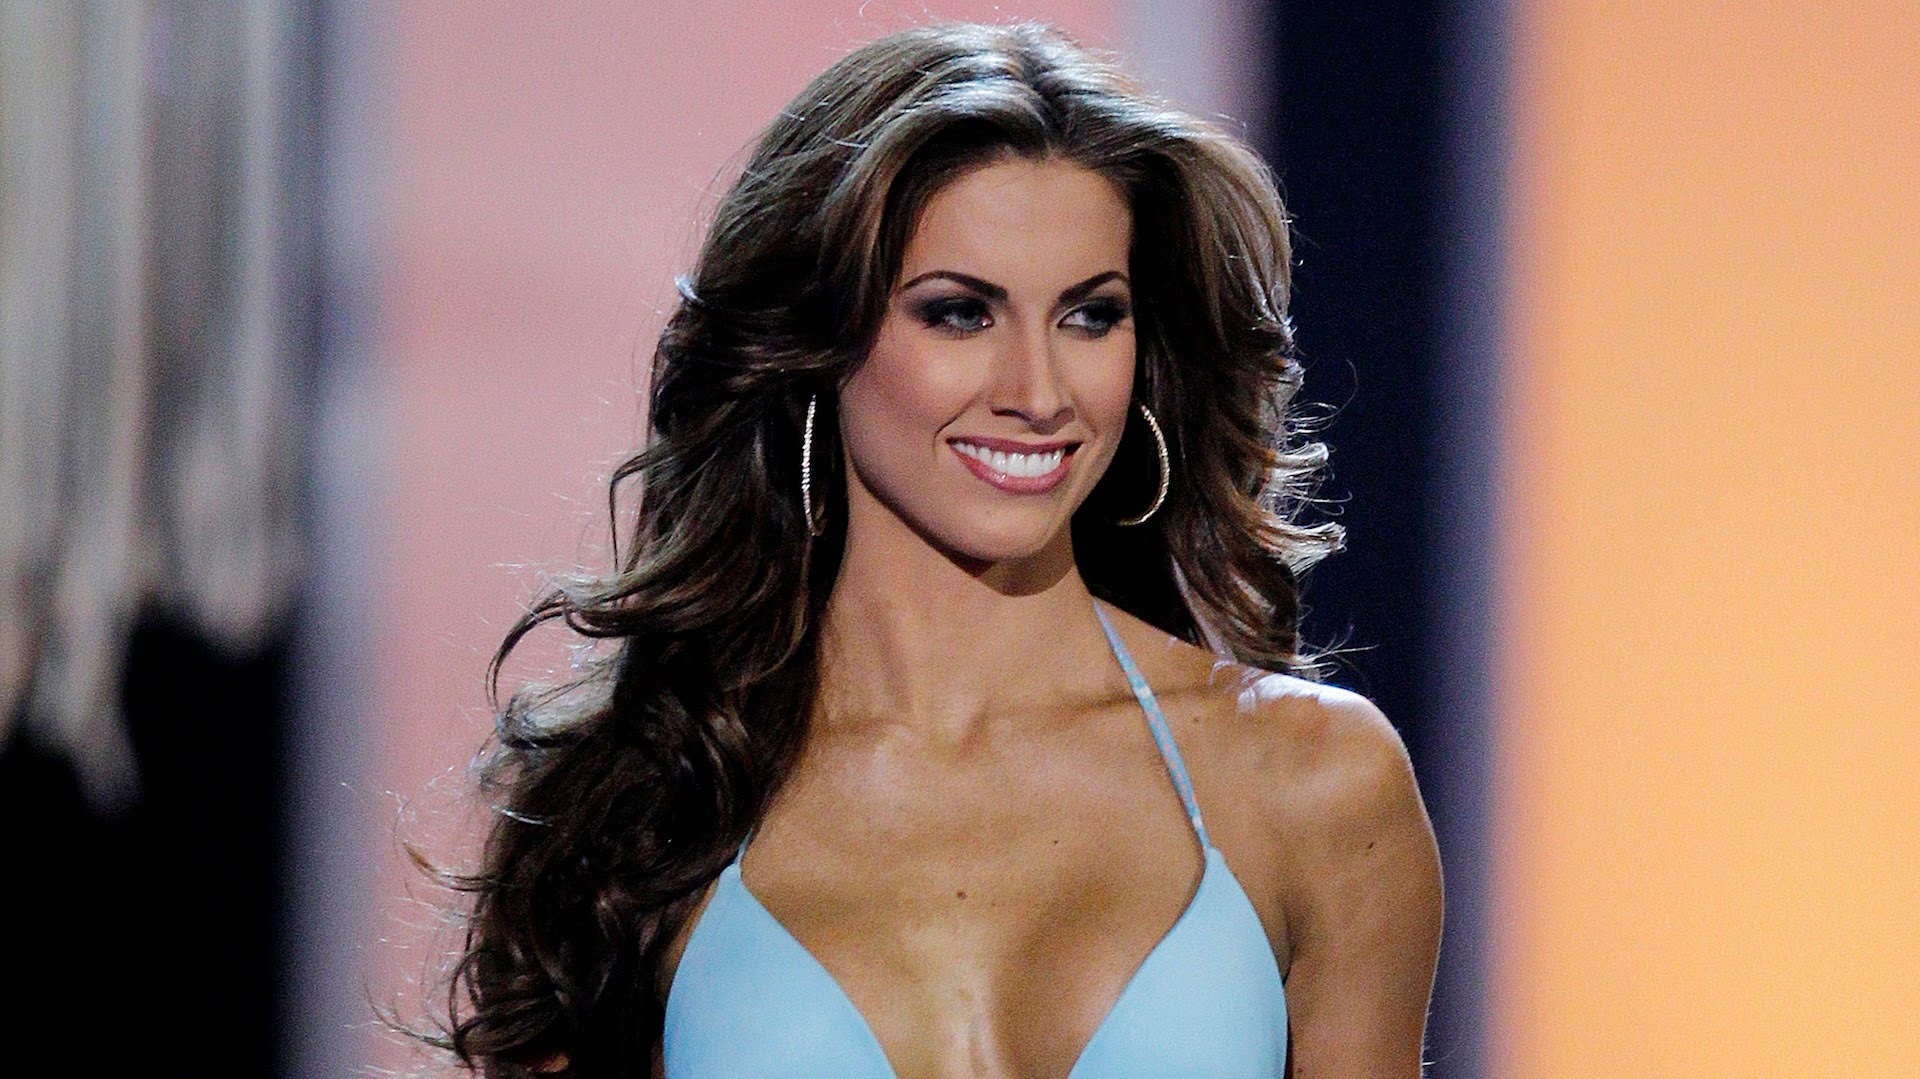 Katherine Webb Pictures & images